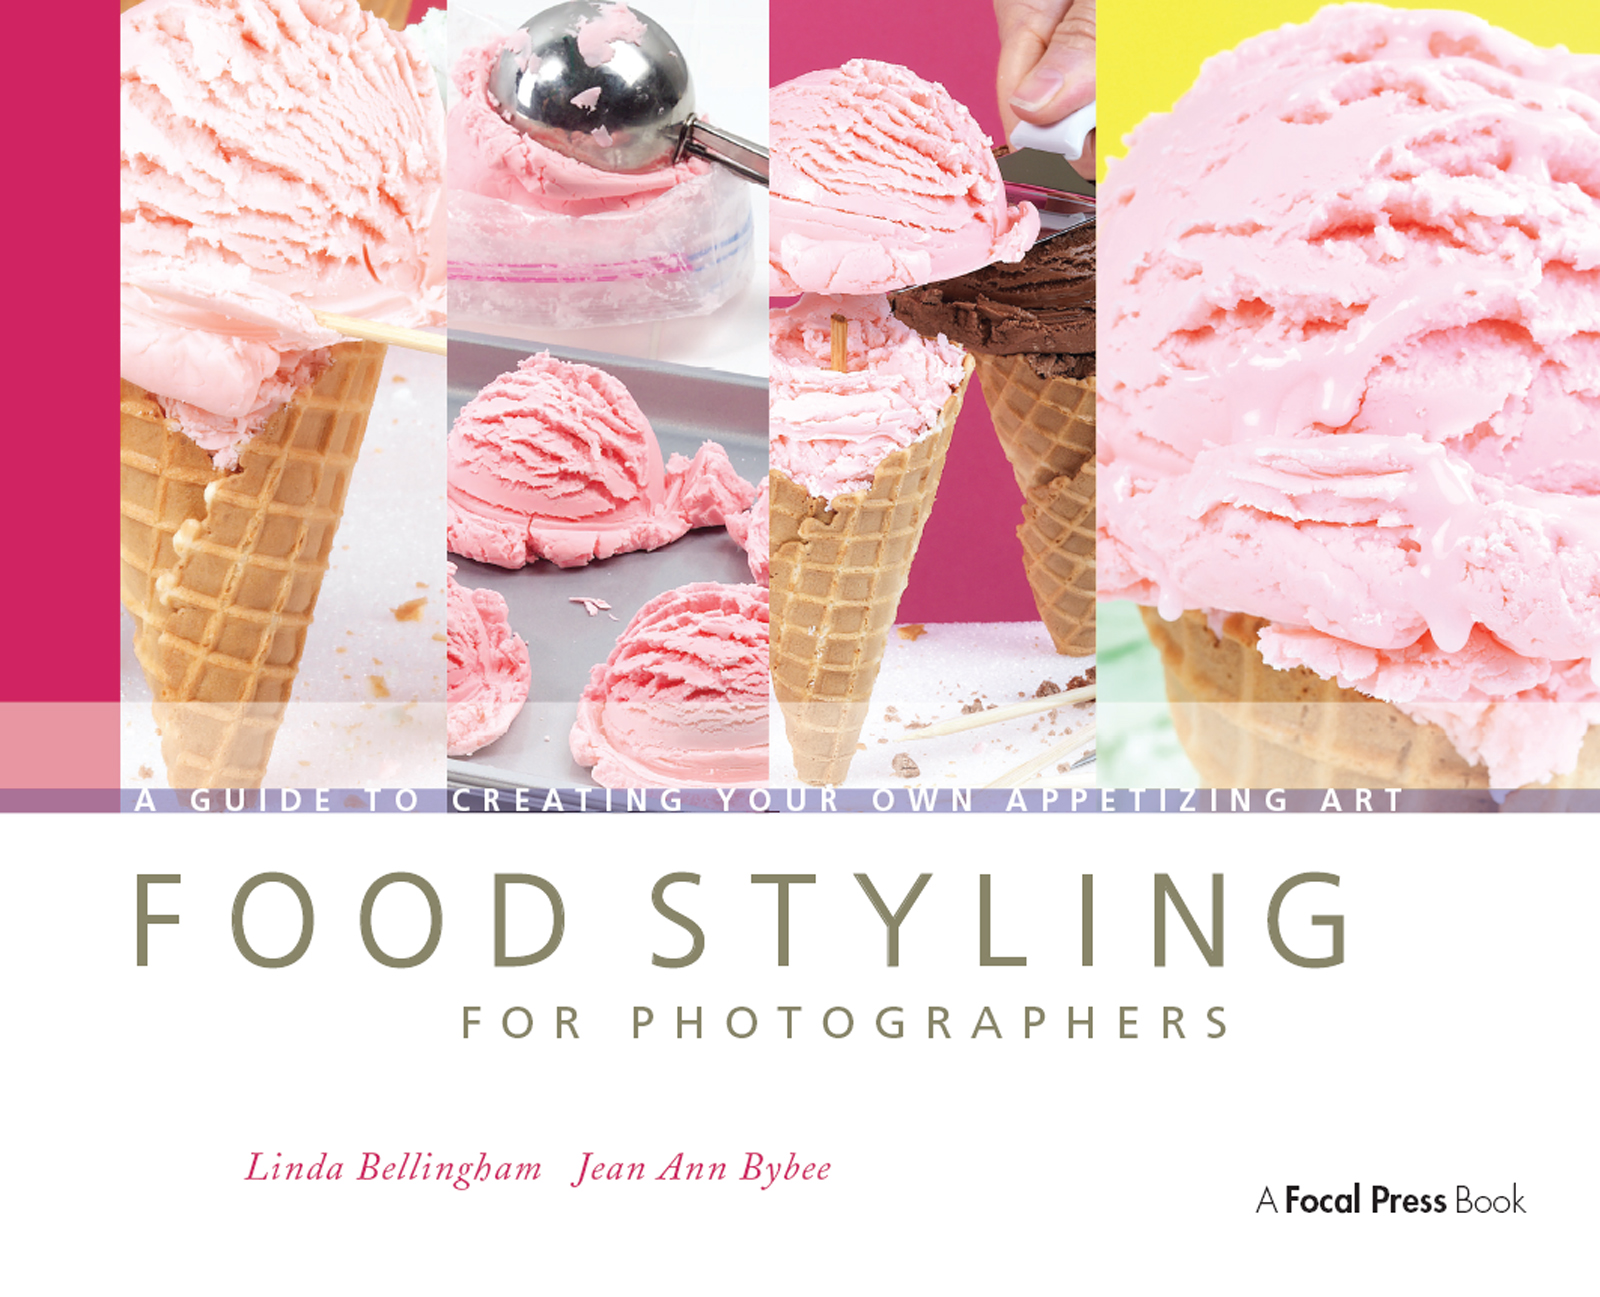 Food Styling for Photographers: A Guide to Creating Your Own Appetizing Art book cover